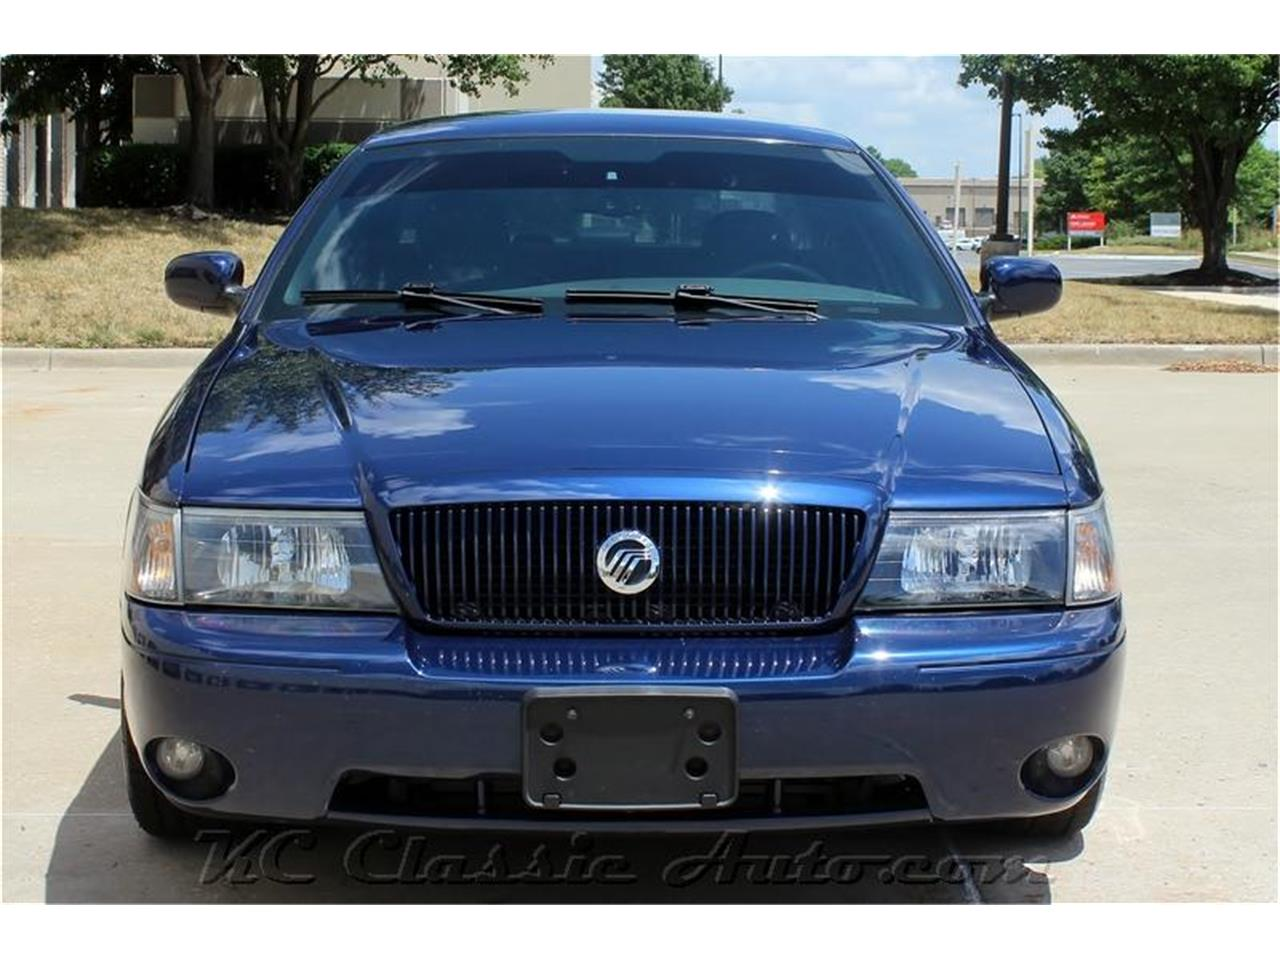 2003 Mercury Marauder for sale in Lenexa, KS – photo 30